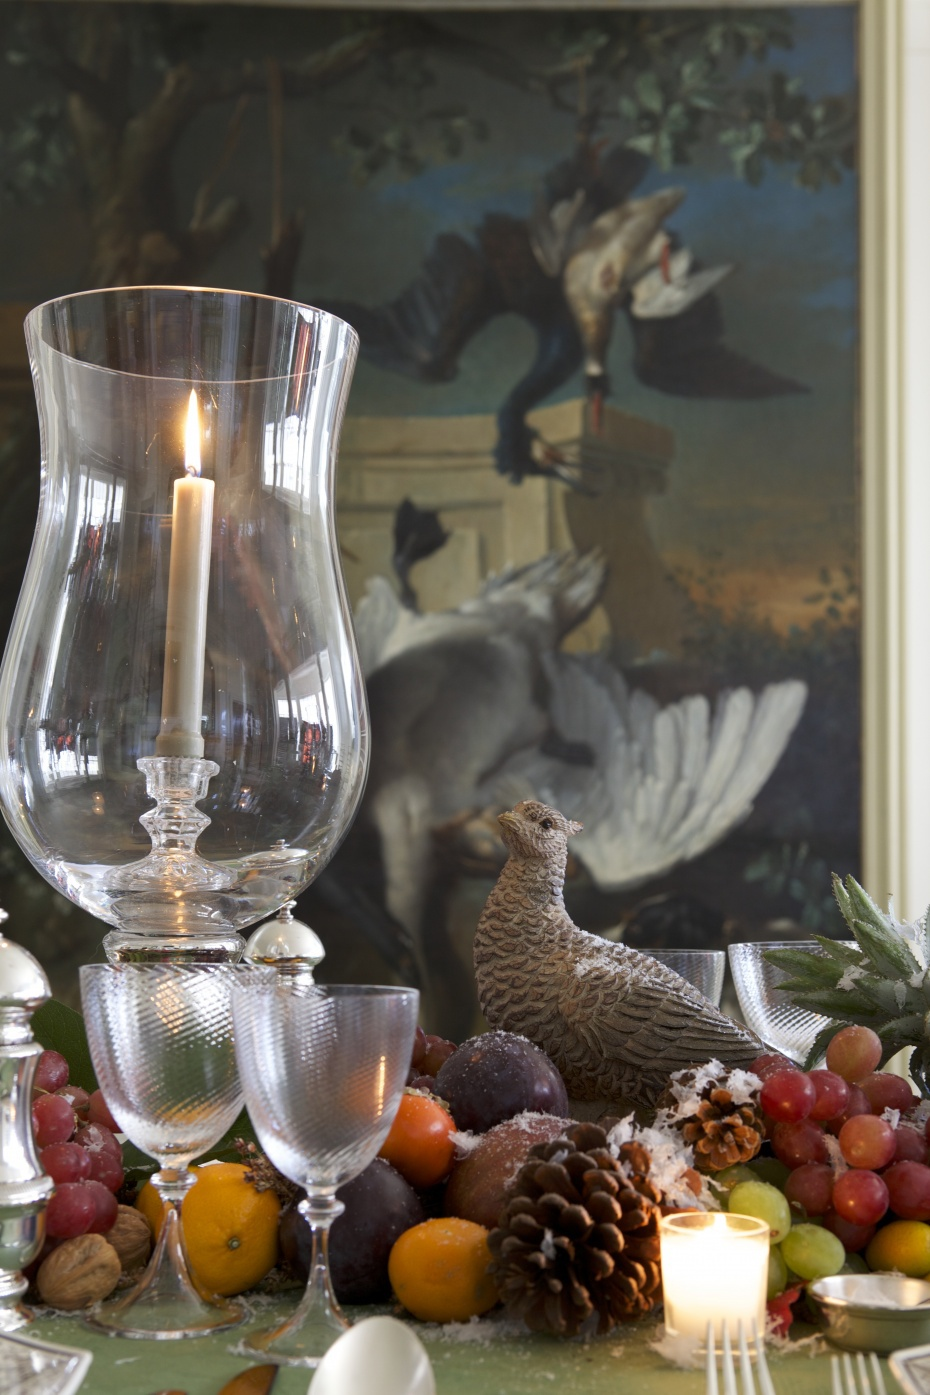 Image Credit and Tablescape Design: Carolyne Roehm